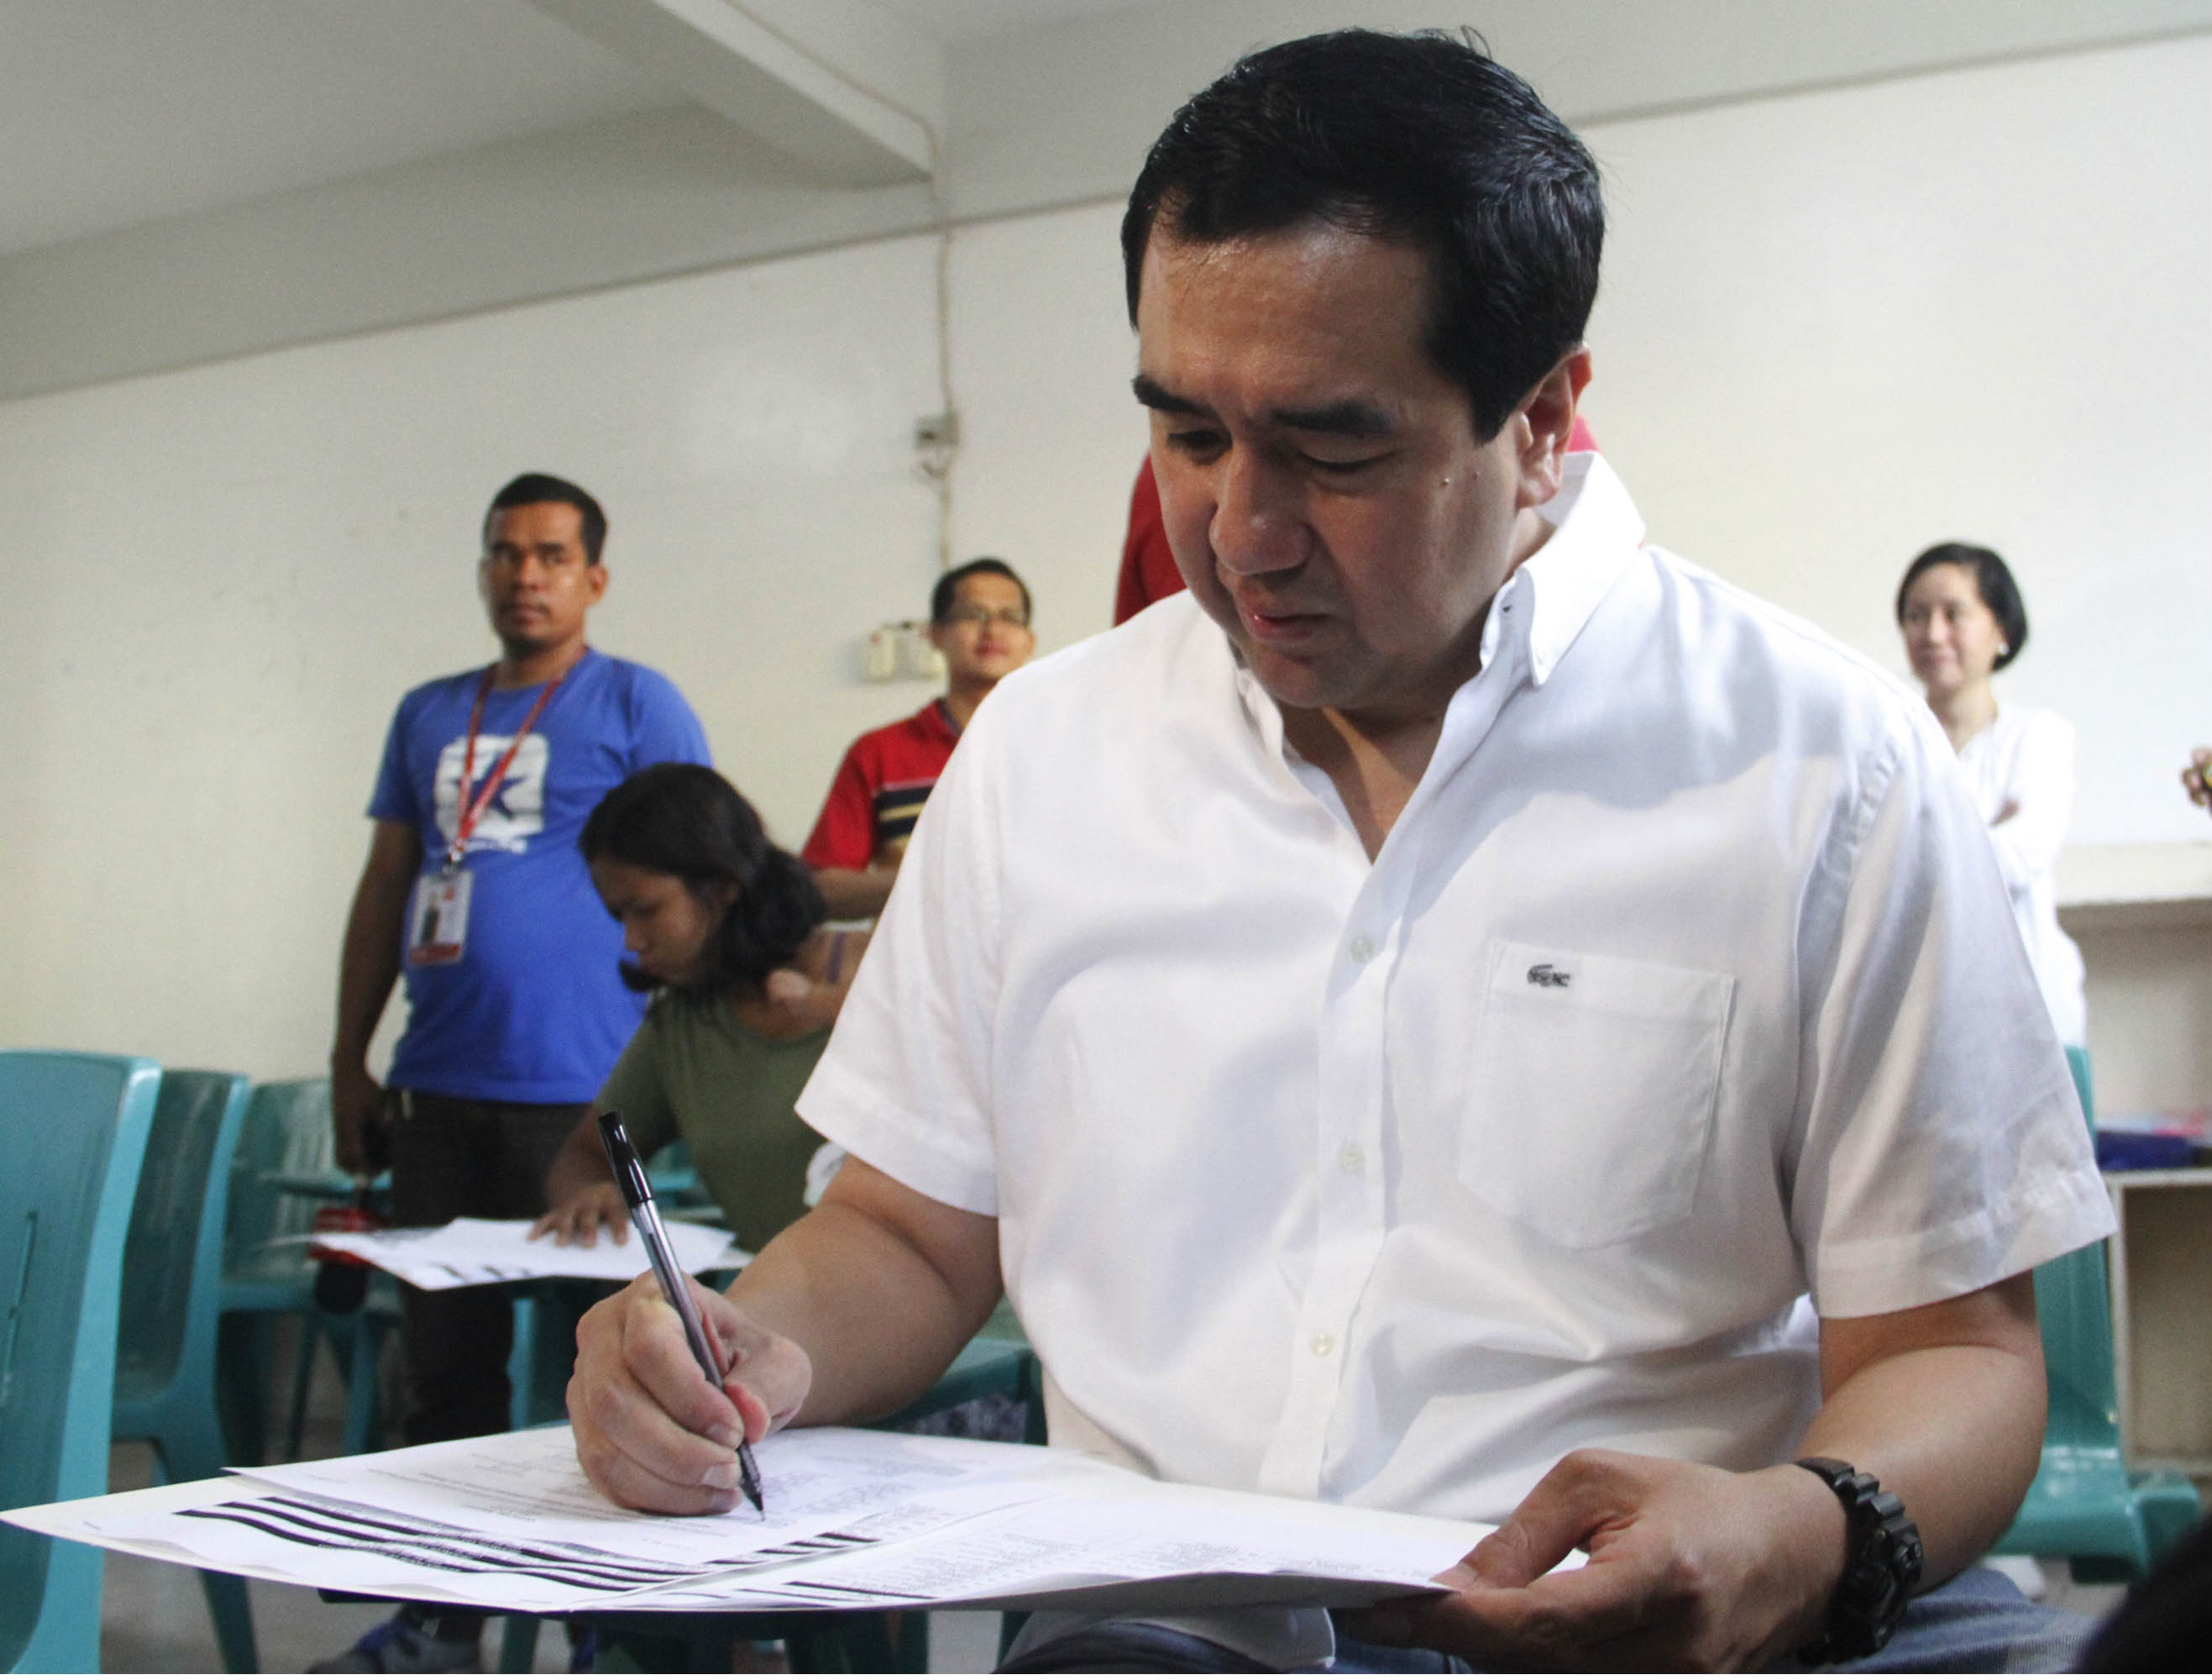 """Commission on Election Chairman Andres """"Andy""""Bautista cast his votes during the Mock Elections to test the Precinct Automated Tallying System (PATAS) proposed by former Commissioner Augusto Lagman and other IT experts organizations on Saturday, June 27,2015 at the Bacoor National High School Annex, Poblacion, Barangay Tabing Dagat, Bacoor City, Cavite (Avito C.Dalan / PNA)"""